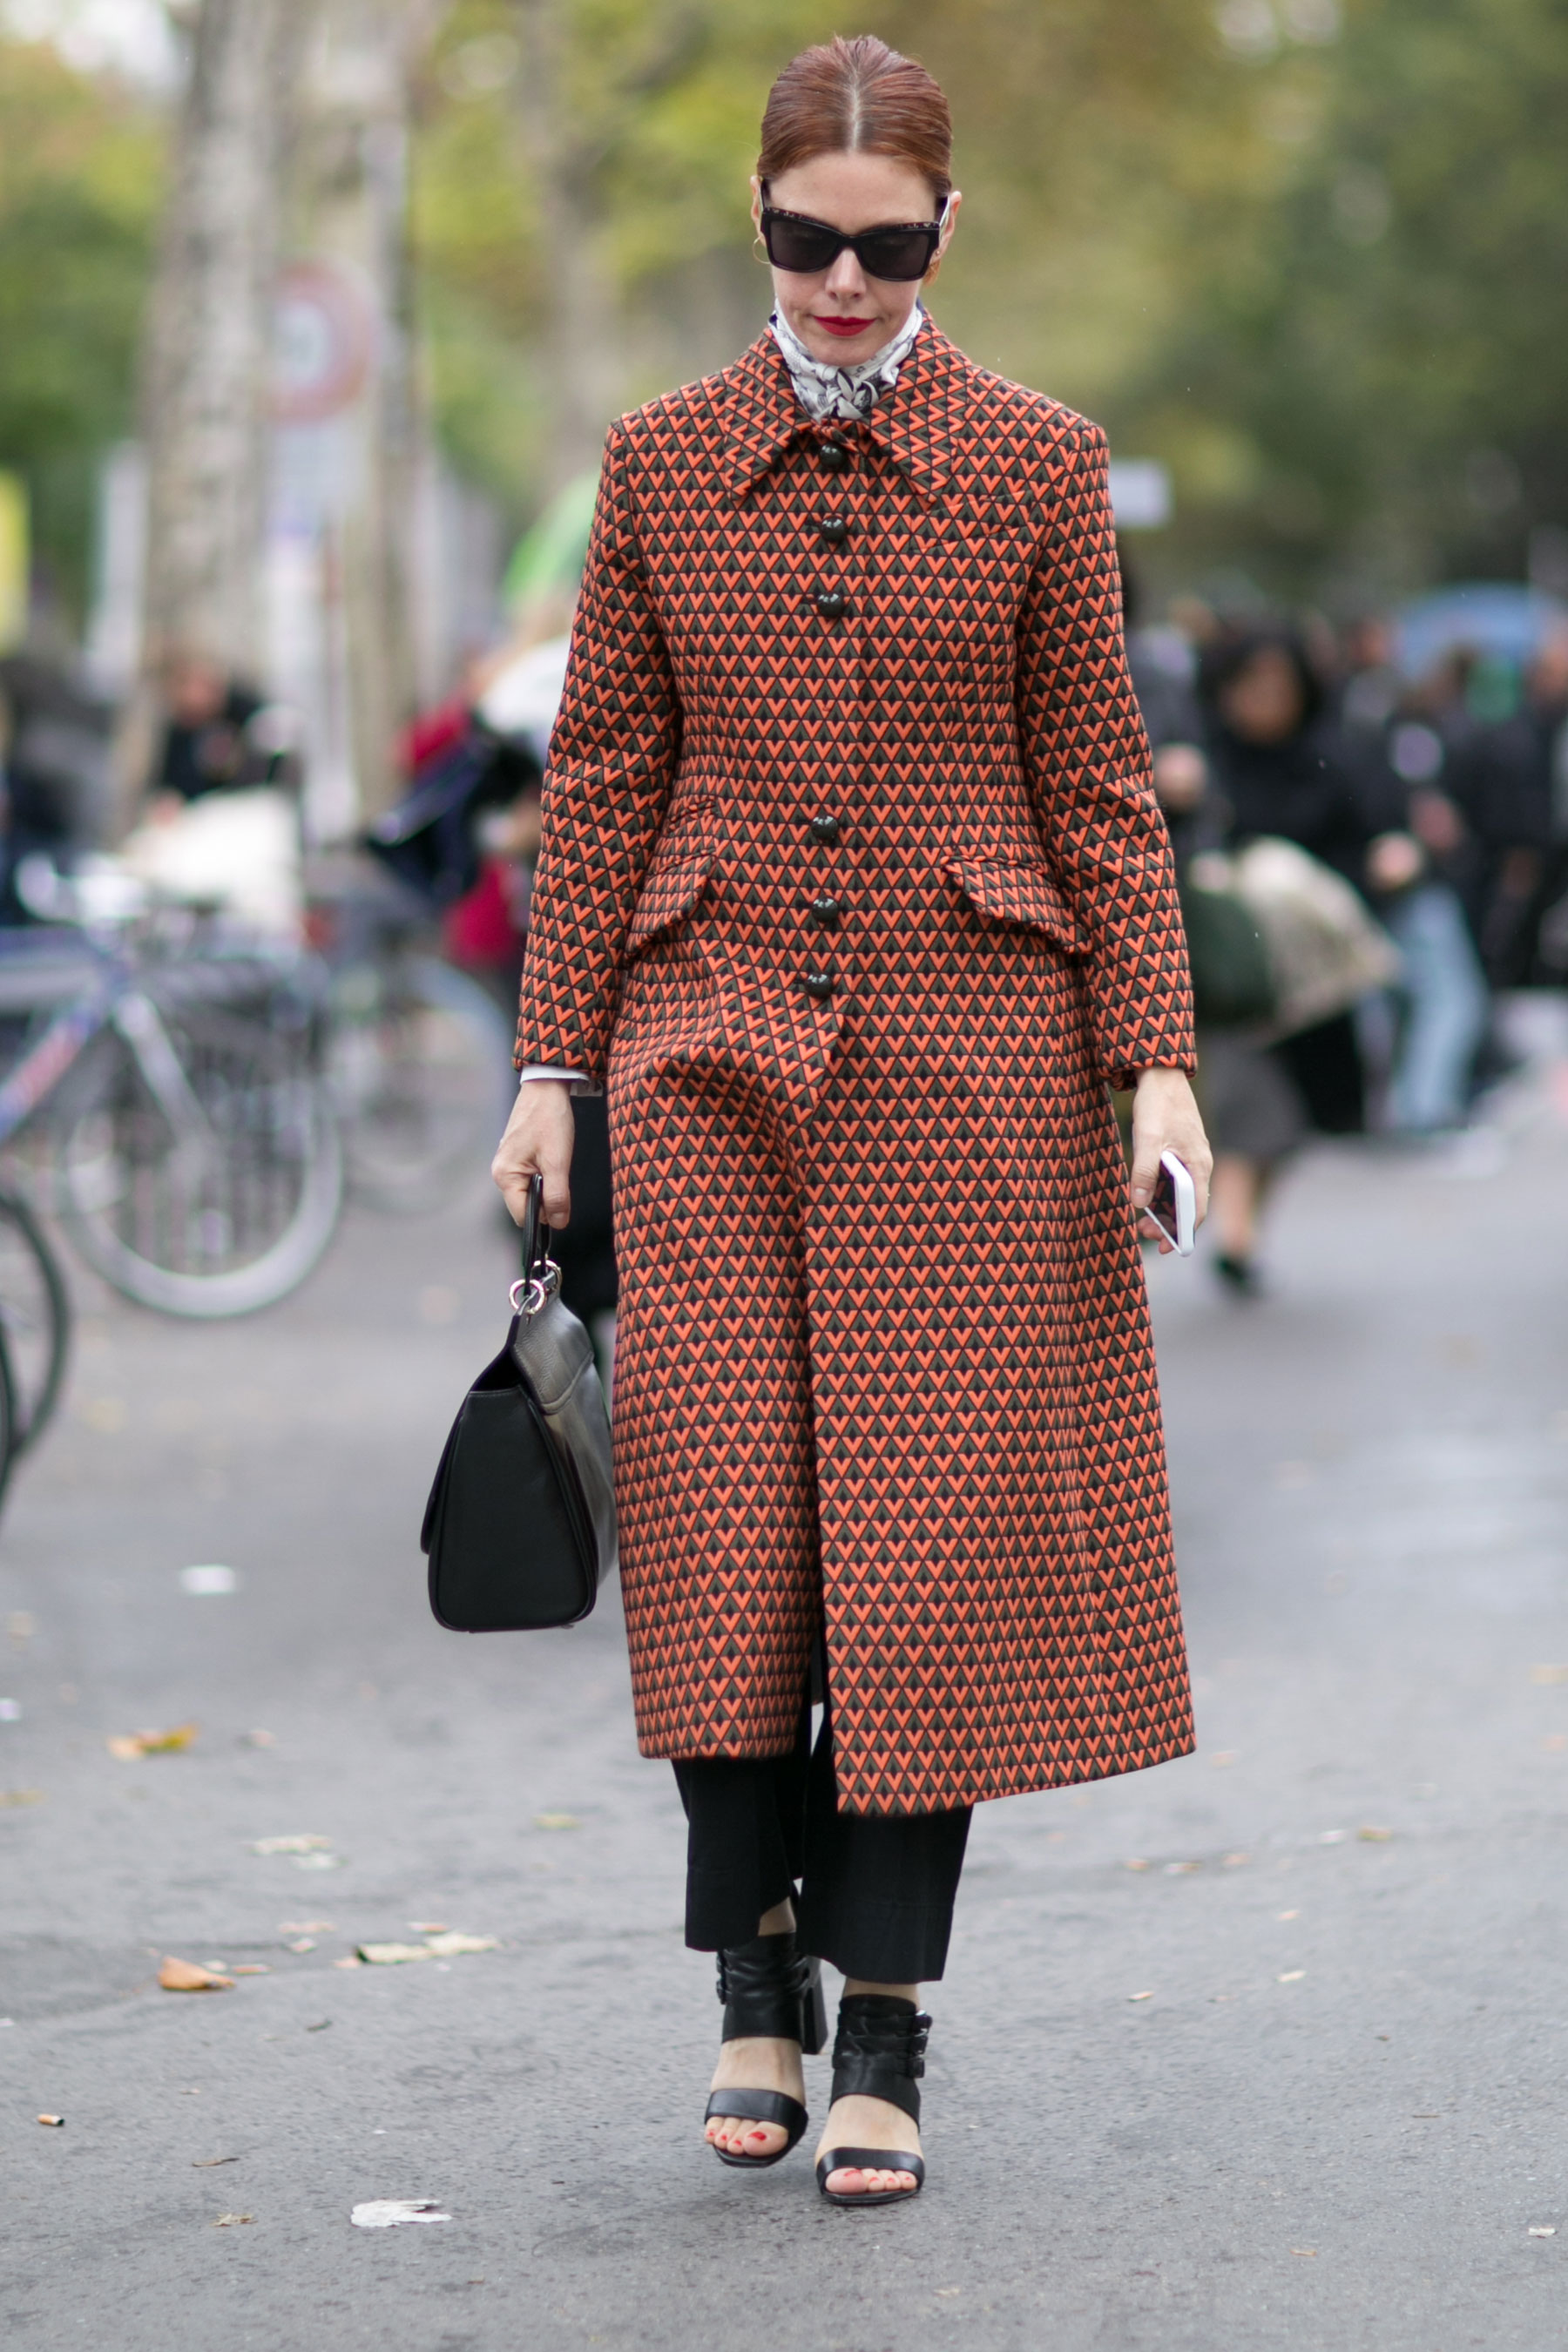 Paris-fashion-week-street-style-day-7-october-15-the-impression-60